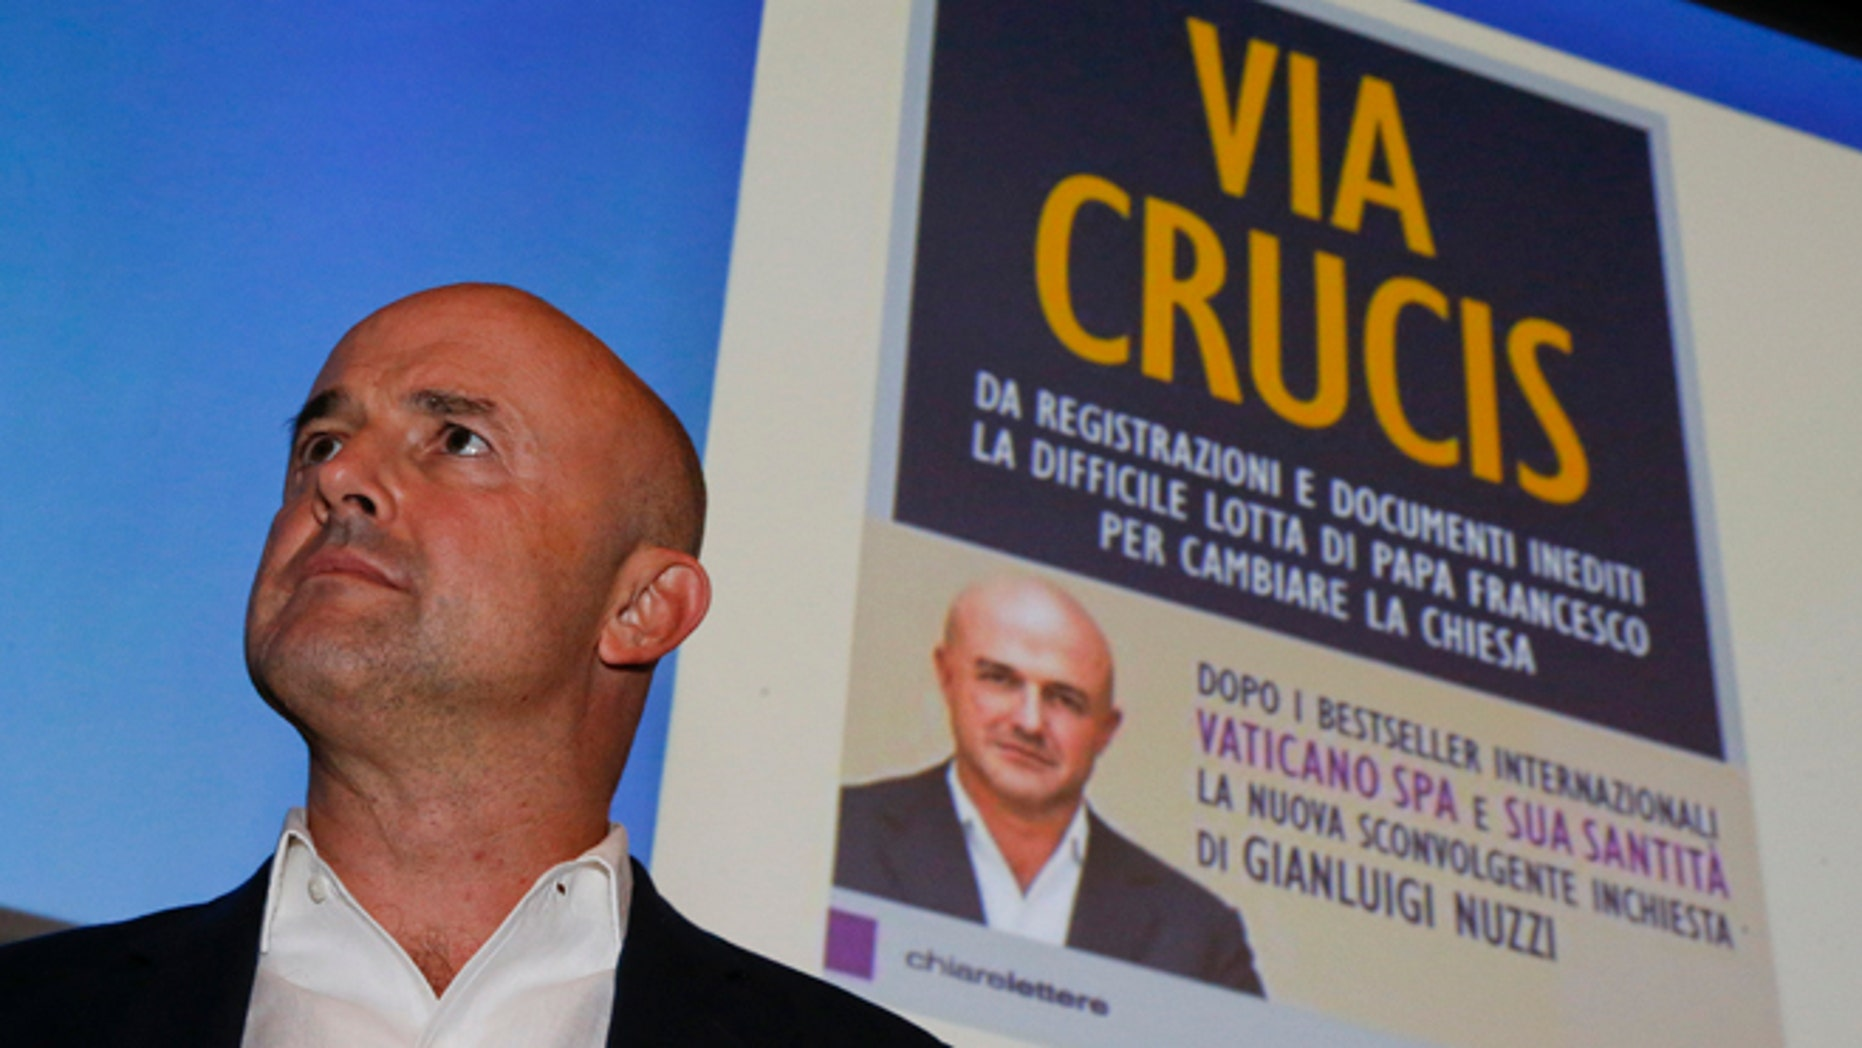 "Italian journalist and writer Gianluigi Nuzzi attends a press conference to promote the release of his new book ''Via Crucis'' (""Merchants in the Temple"", in the English language edition) in Milan, Italy, Monday, Nov. 16 2015. In his book Nuzzi makes some startling allegations, including a report that Vatican ""postulators"" - officials who promote sainthood causes - bring in hundreds of thousands of euros in donations for their causes but are subject to no oversight as to how the money is spent. (AP Photo/Luca Bruno)"